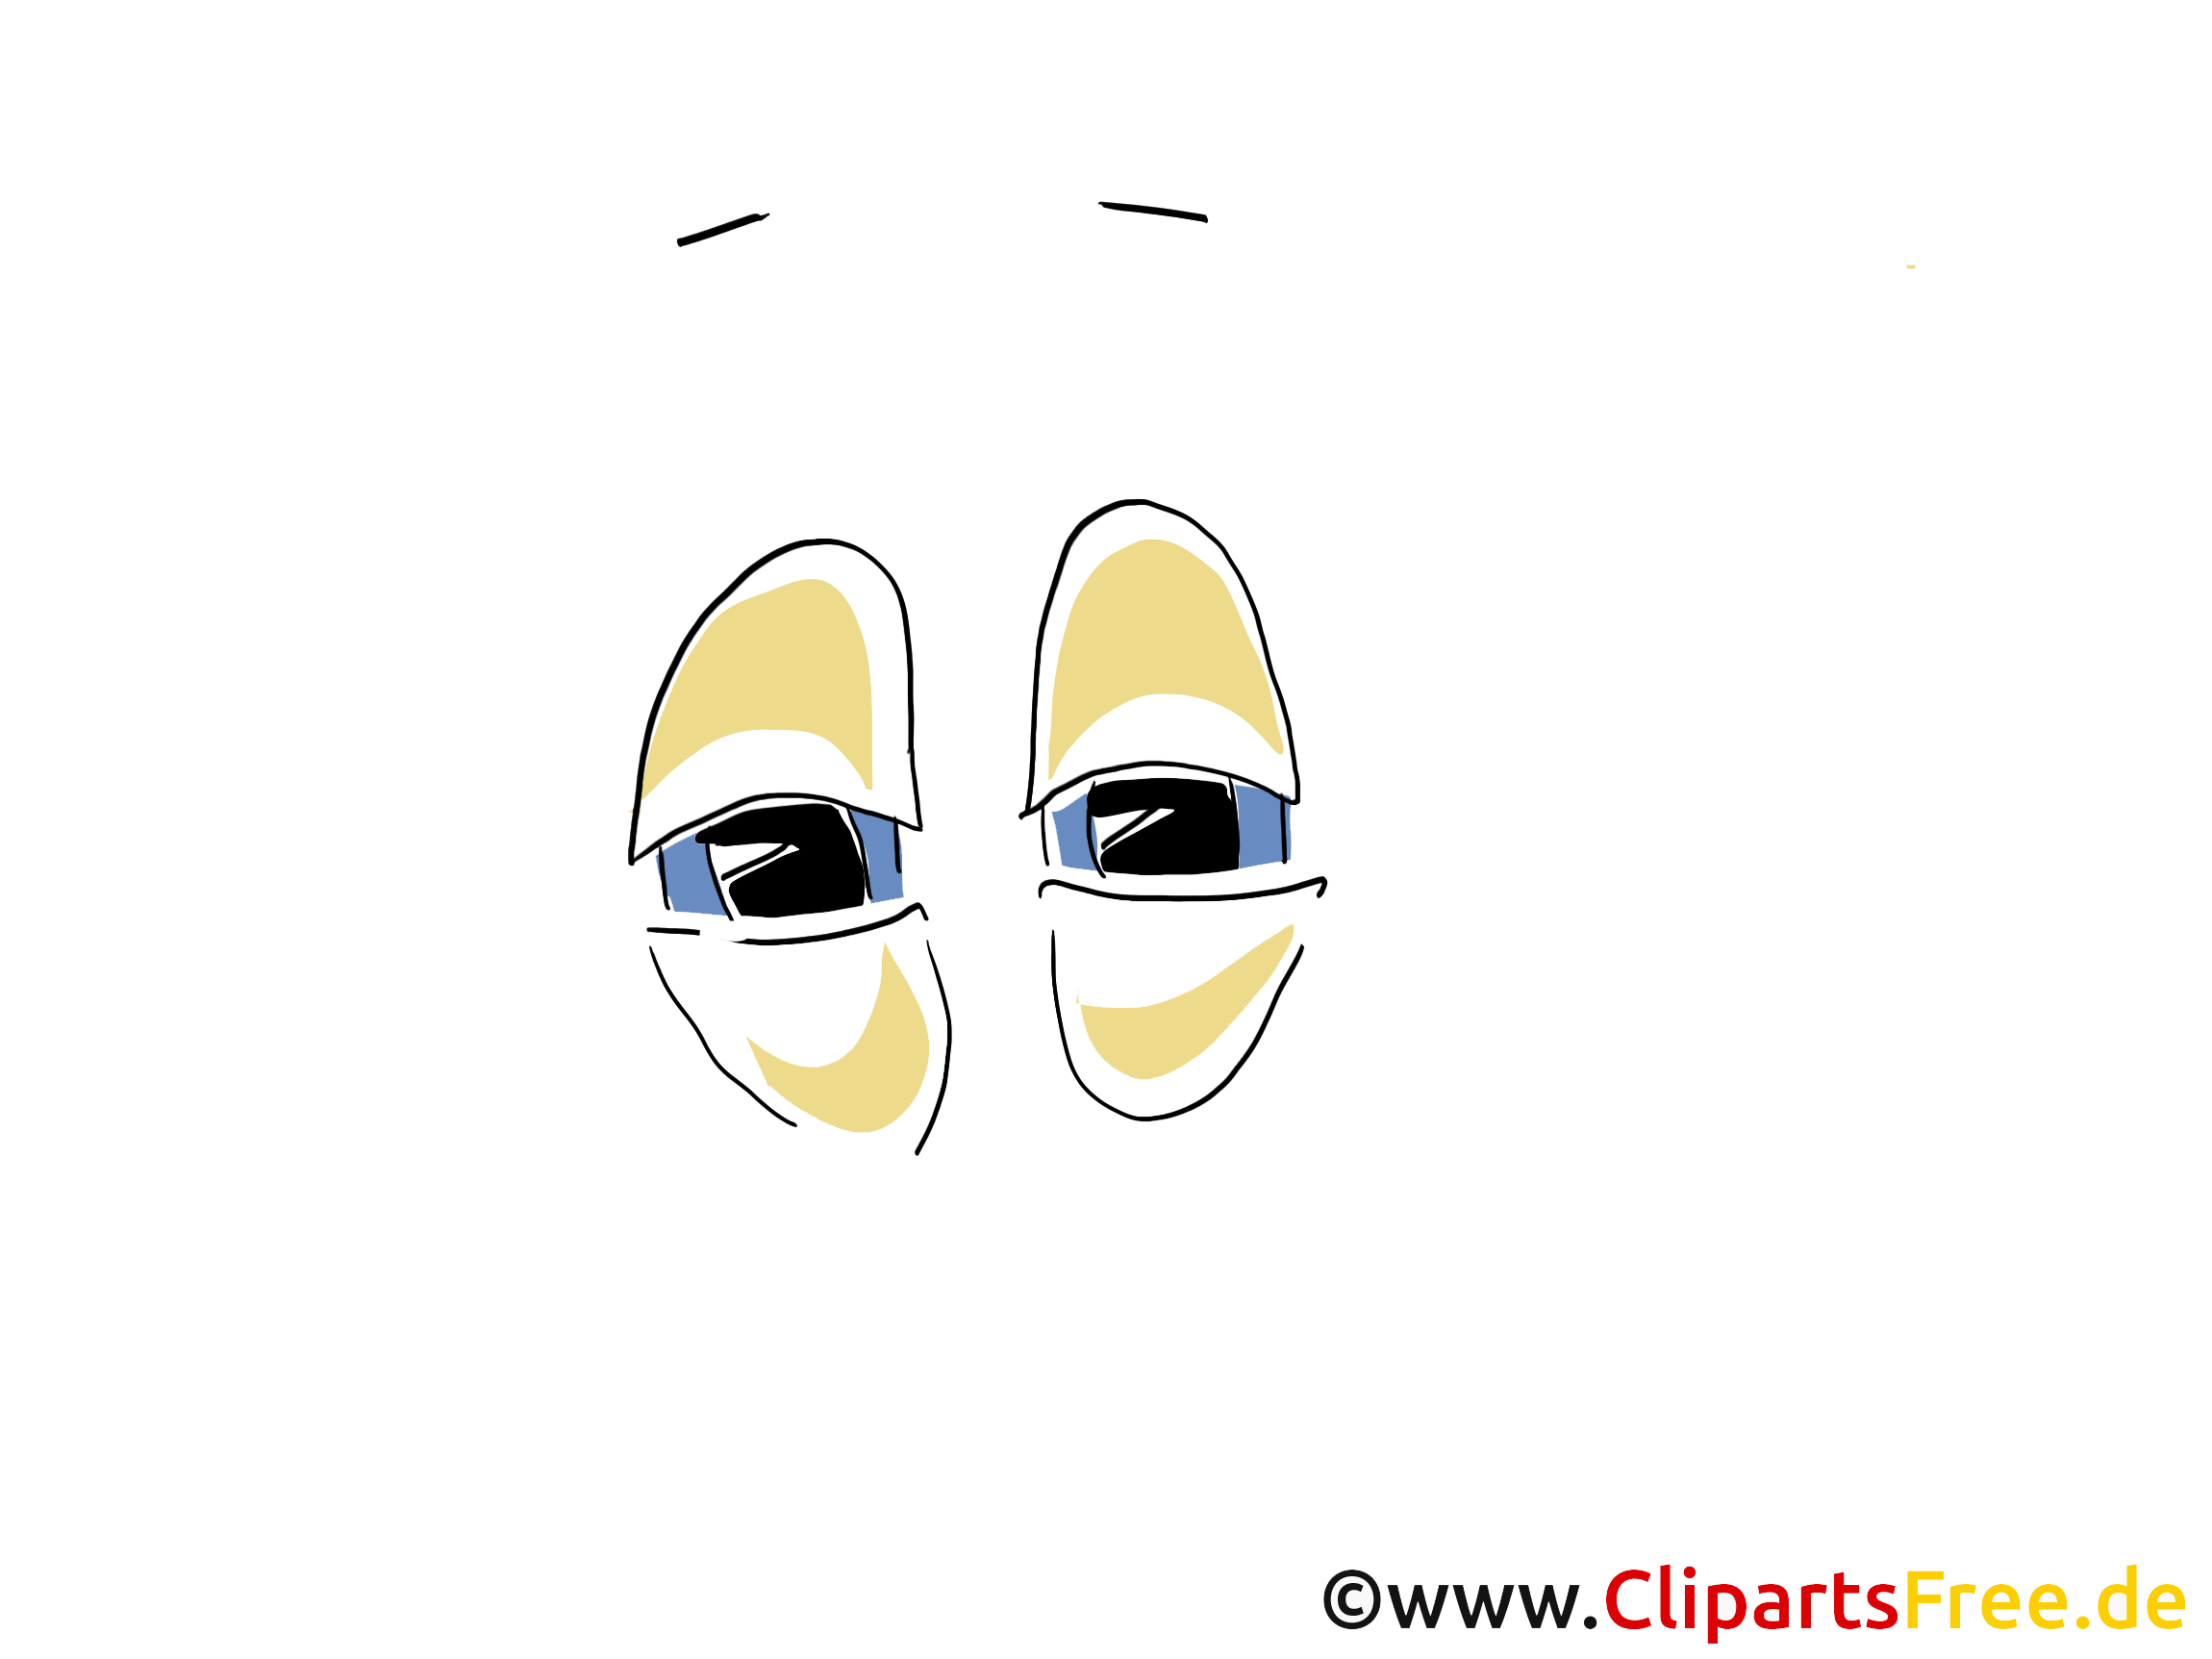 Clipart yeux dessin dessins gratuits cartoon dessin picture image graphic clip art - Dessins gratuits a telecharger ...